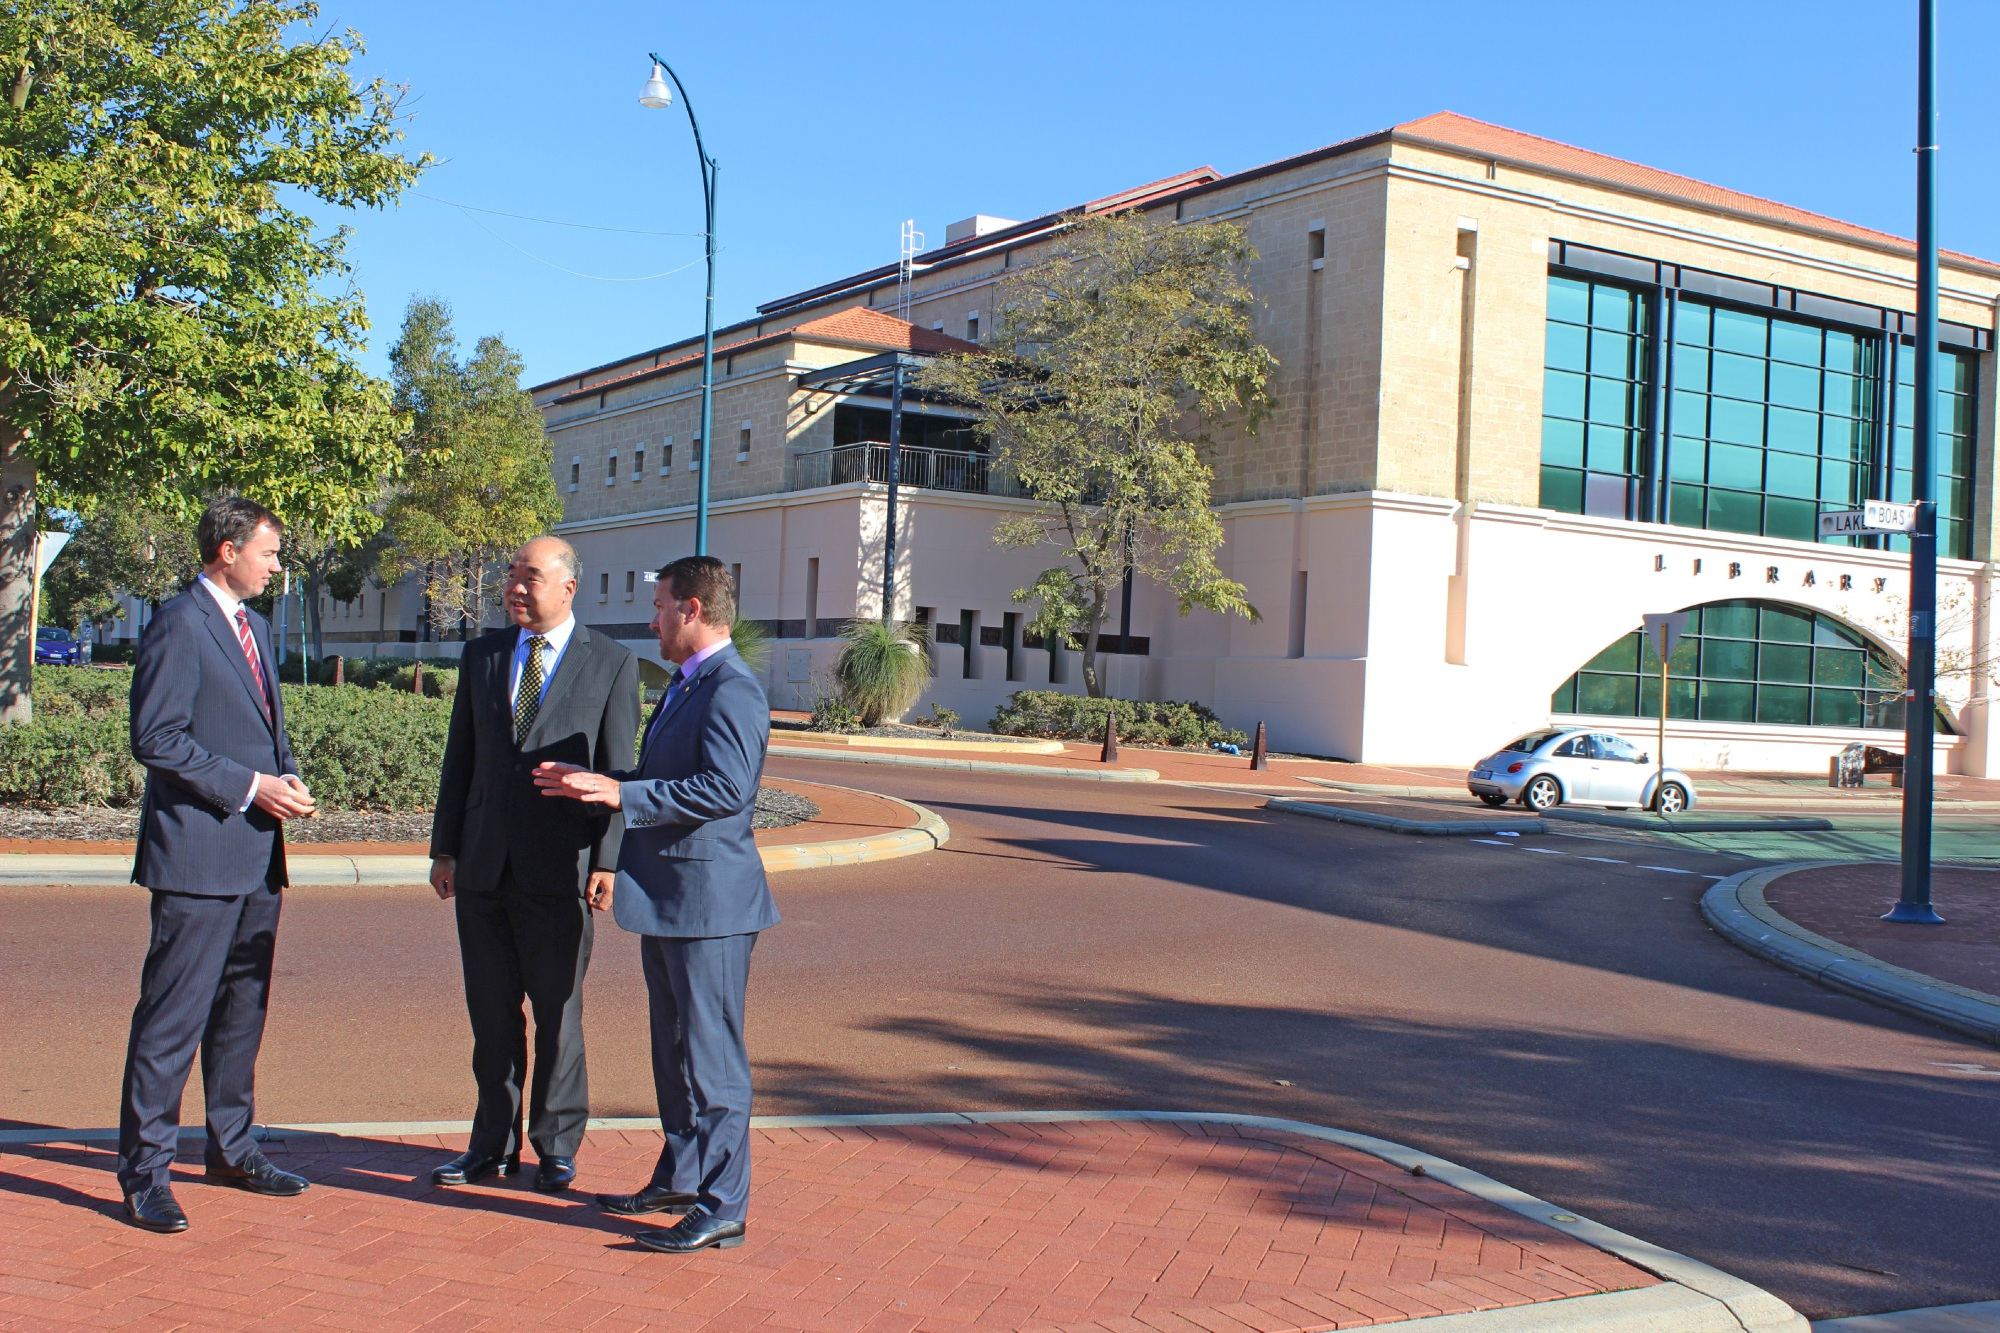 Justice Minister Michael Keenan, Moore MHR Ian Goodenough and Joondalup Mayor Troy Pickard.